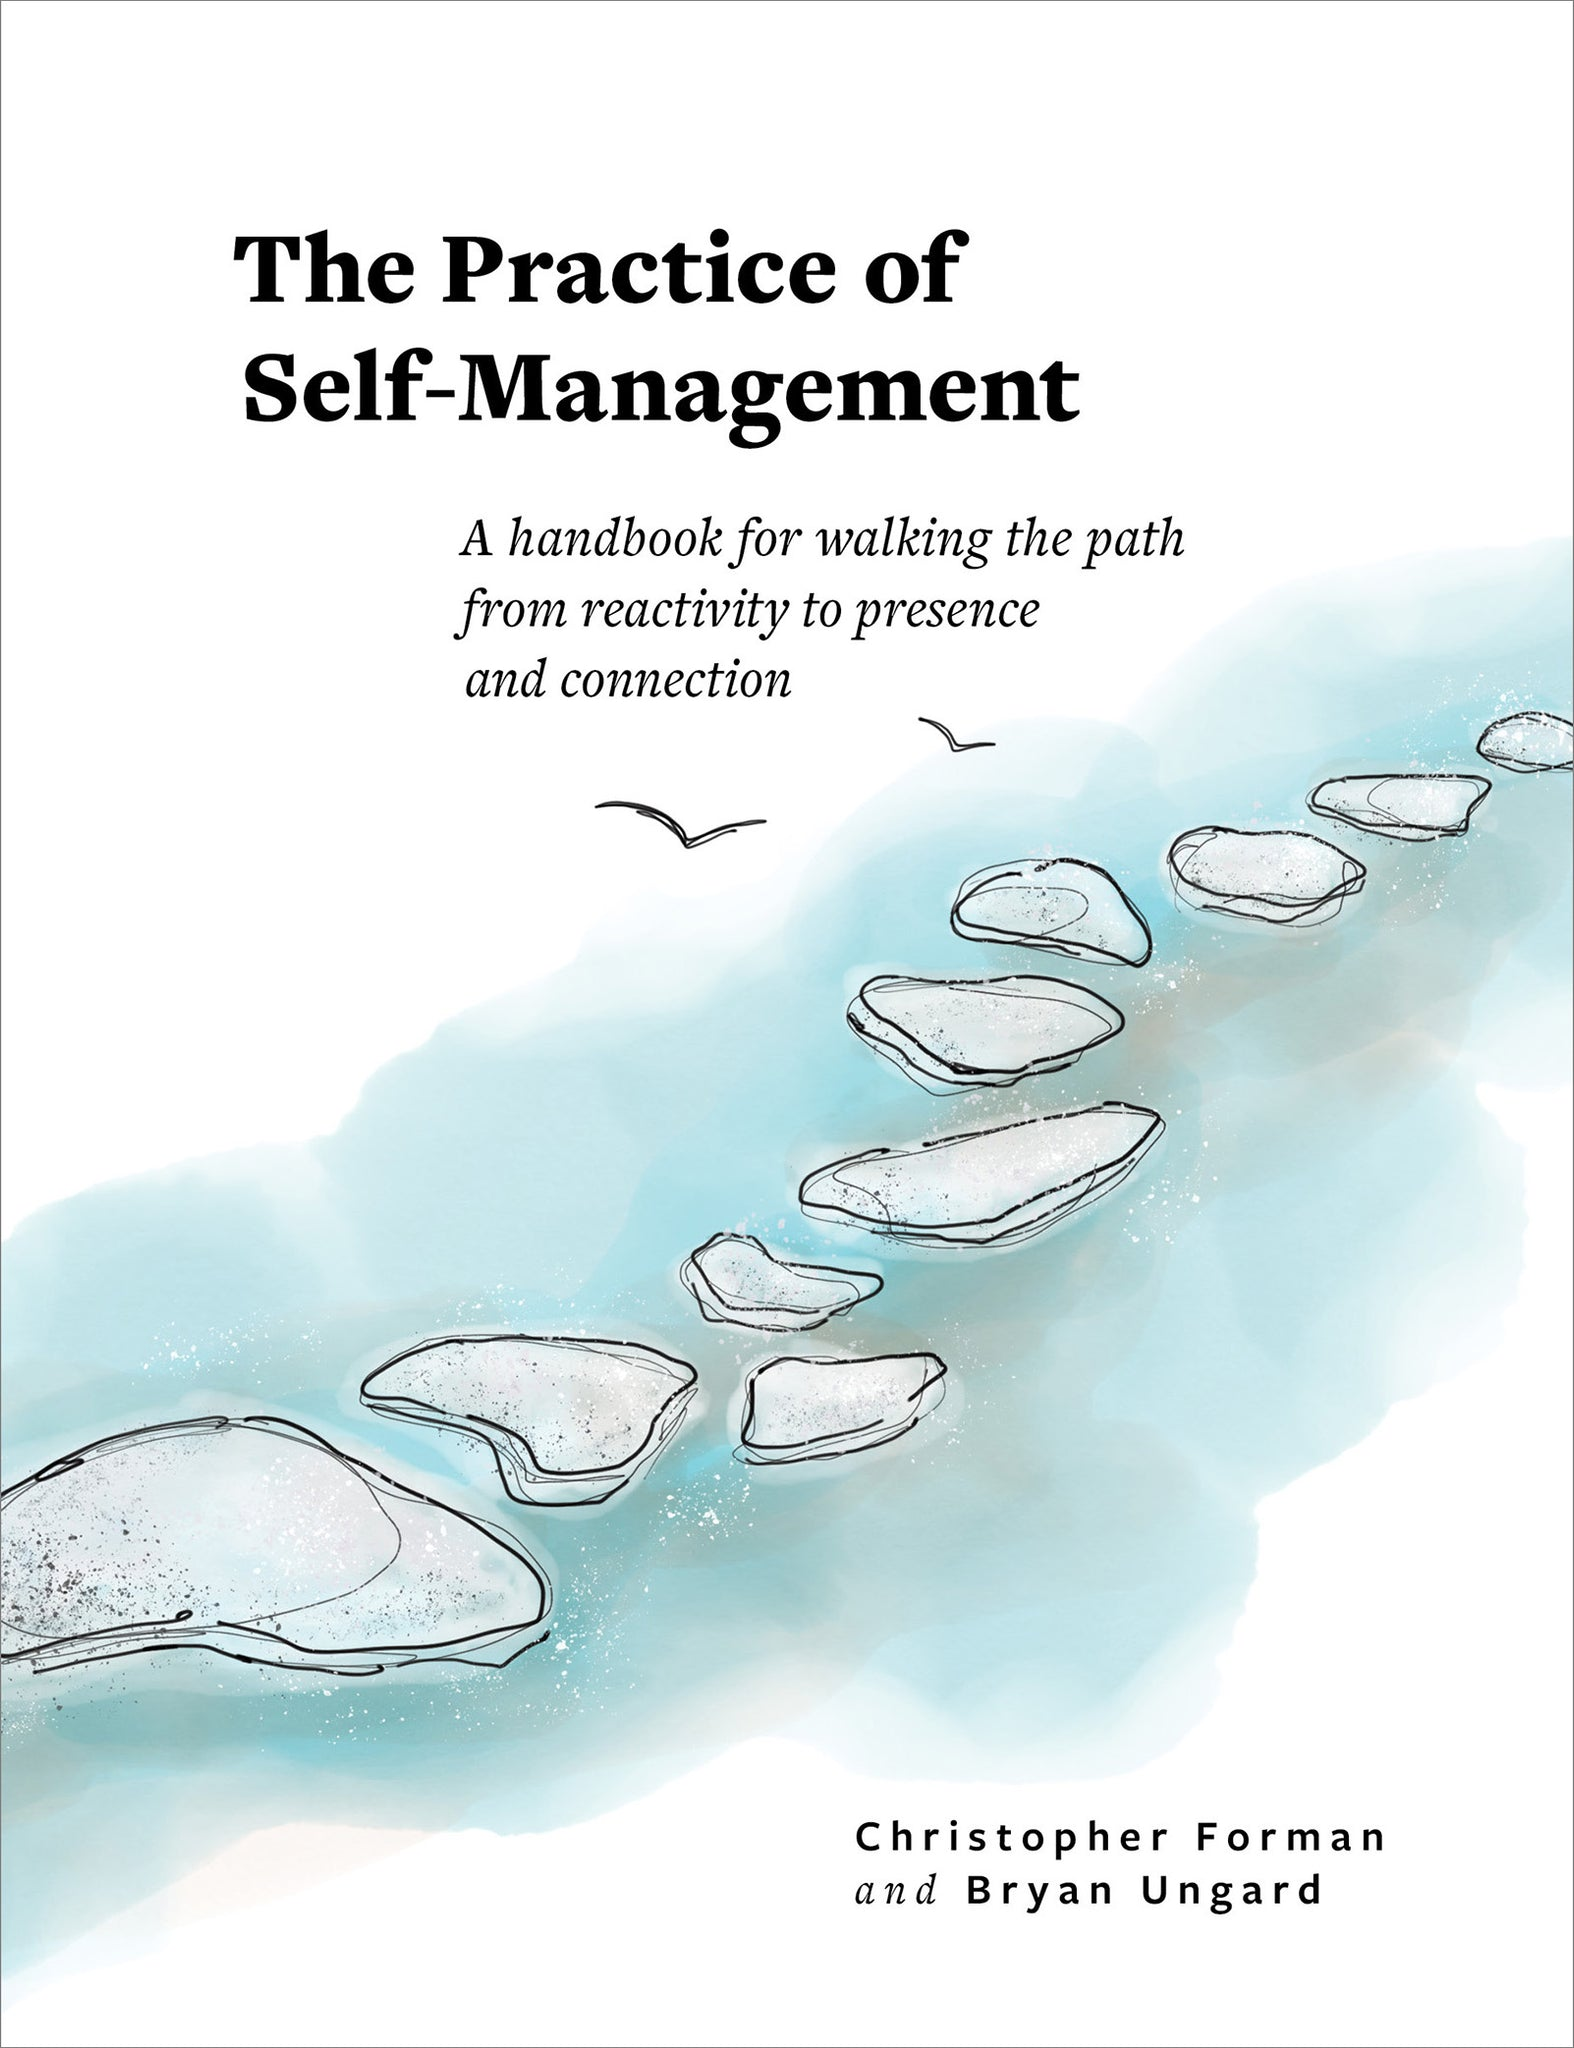 The Practice of Self-Management